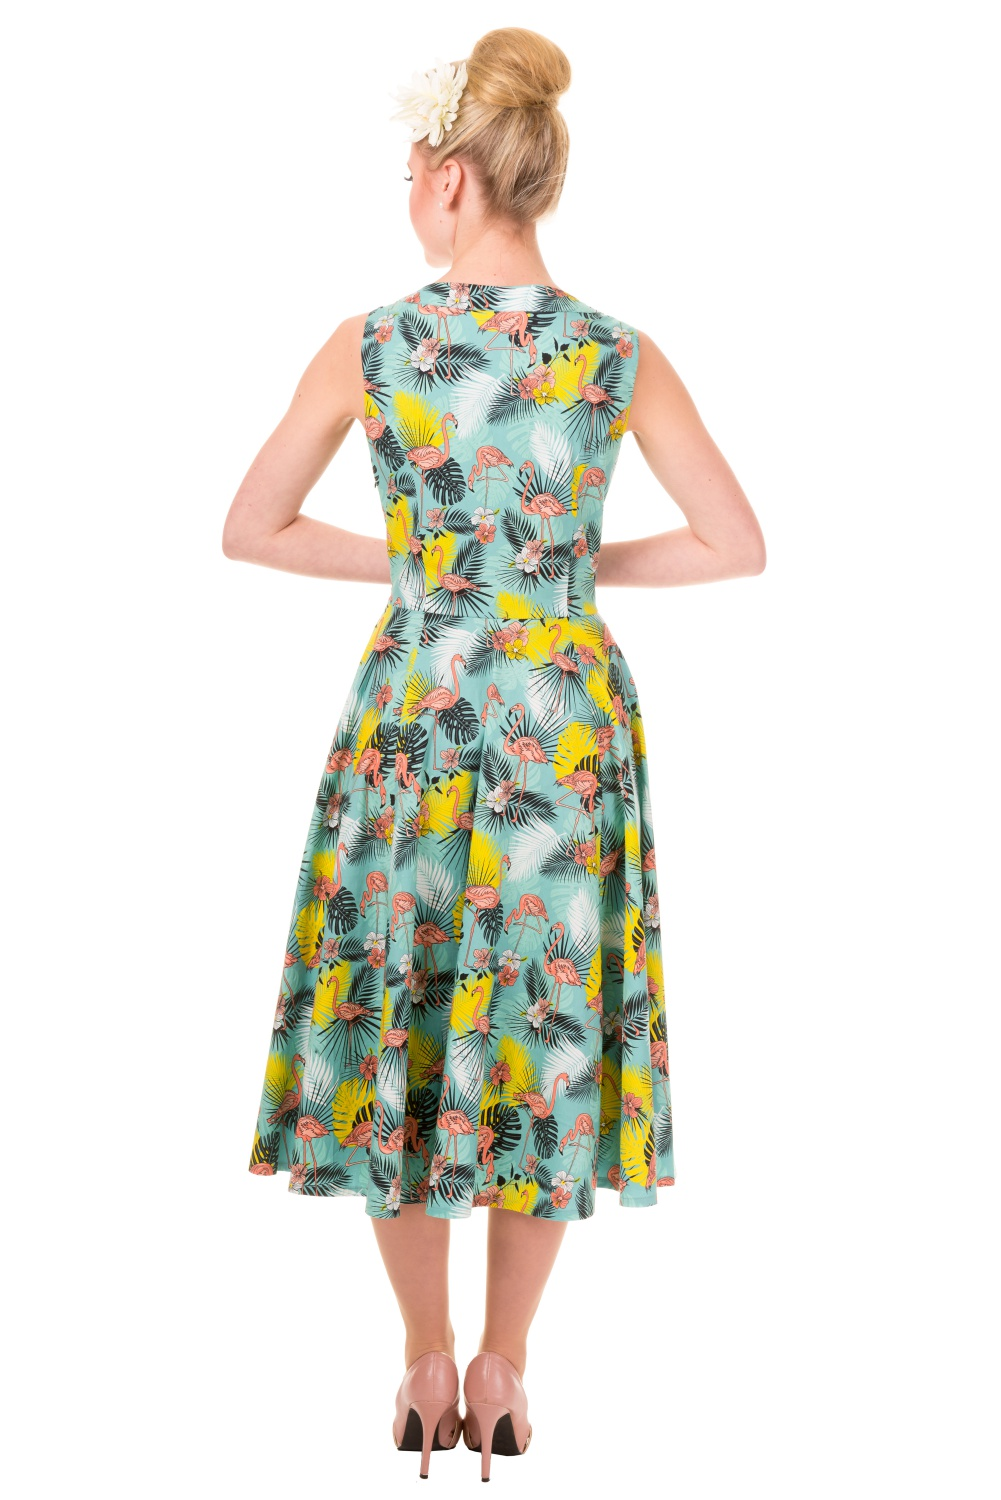 Banned Wonderlust Tropical Flamingo Rockabilly Prom Dress